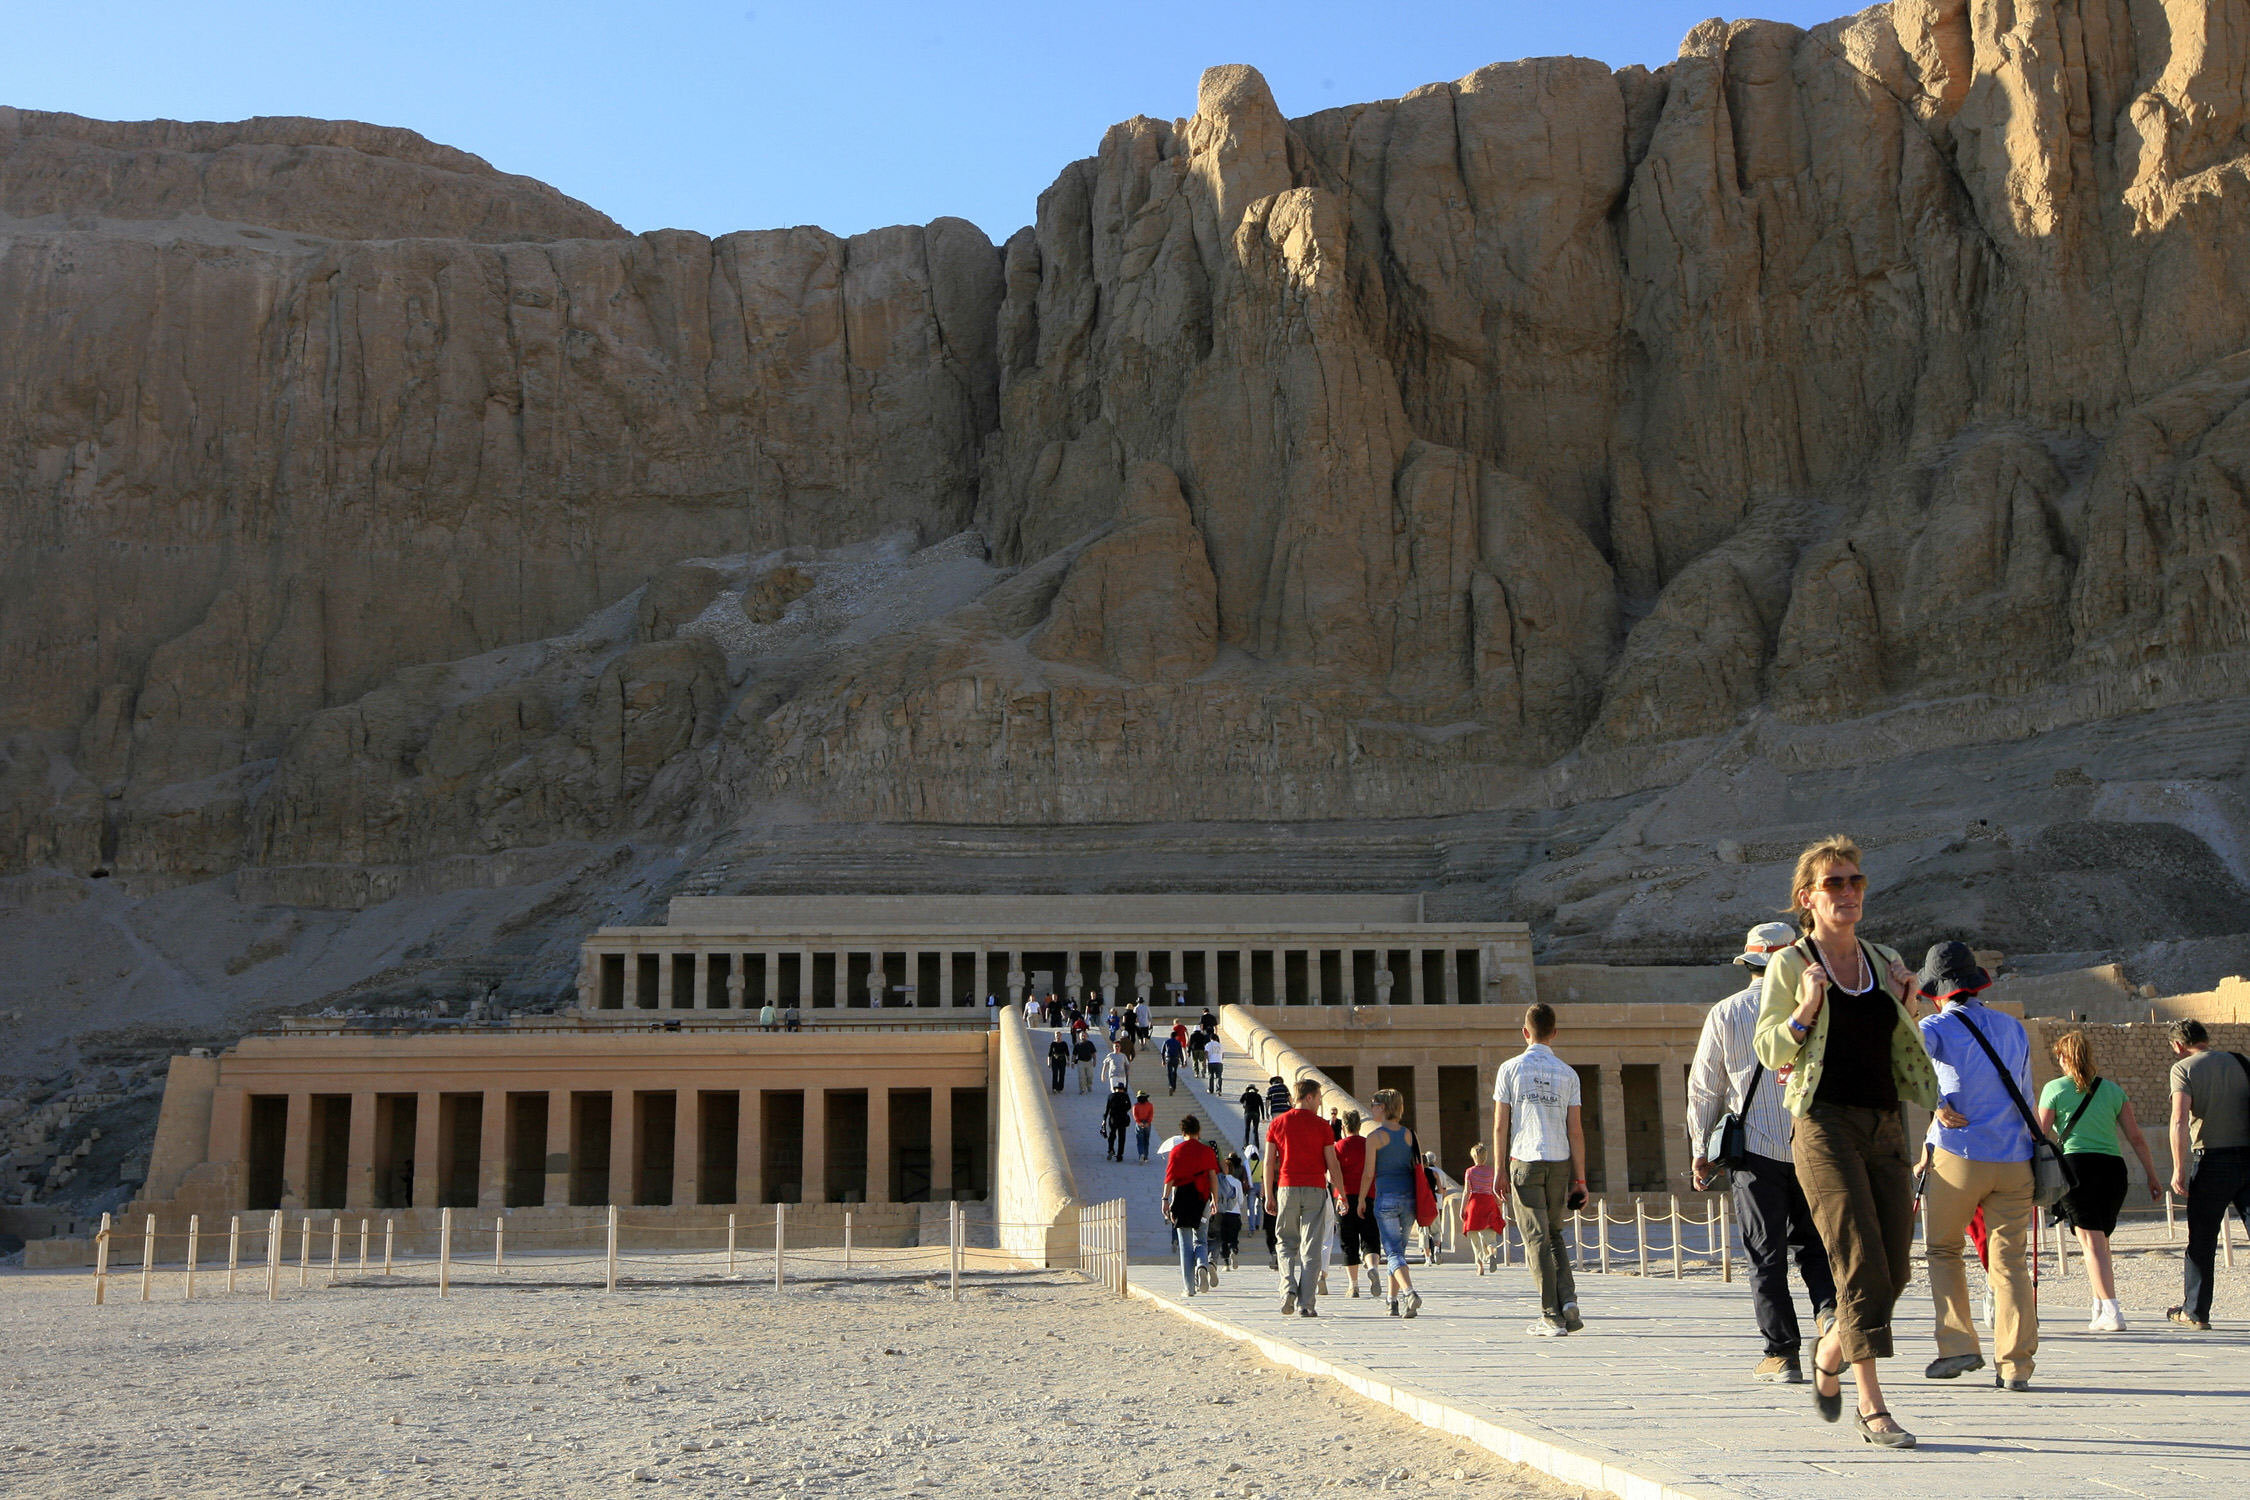 Hotels in Cairo, Luxor and Aswan will have the least occupancies over the next Eid holiday, as Egyptians prefer to go to coastal areas. (AFP Photo)